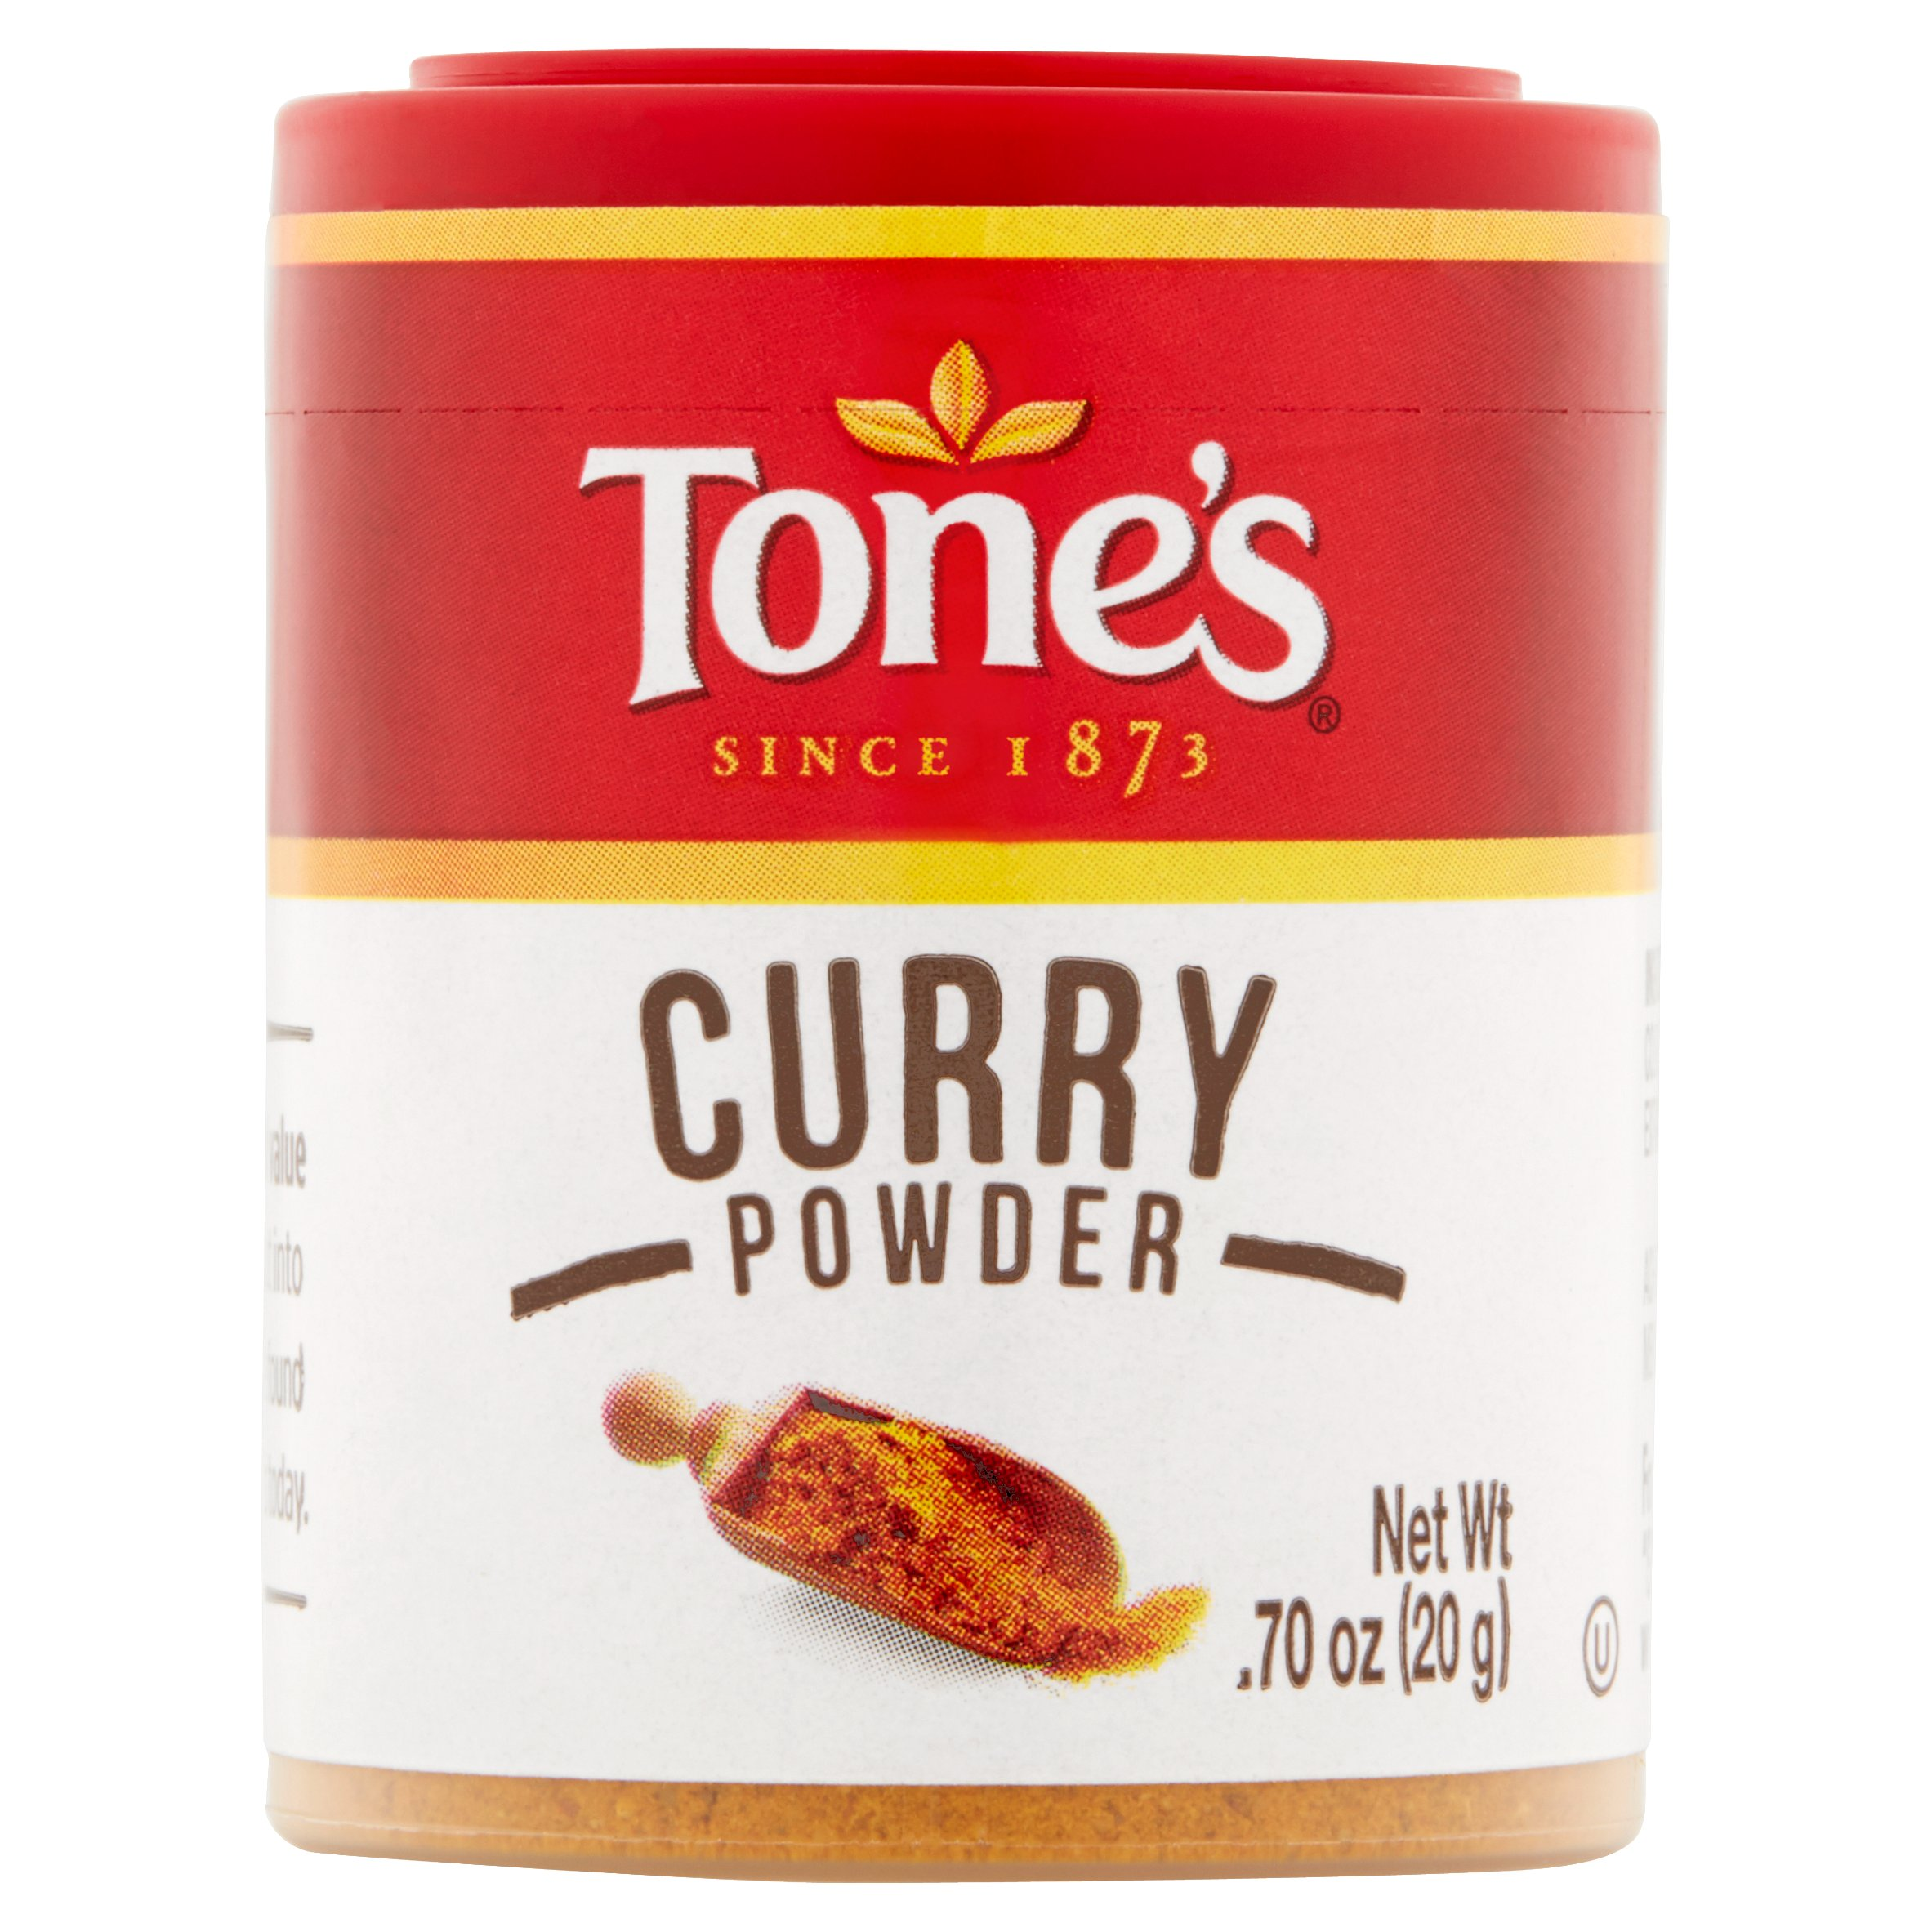 (4 Pack) Tone's Curry Powder, .70 oz